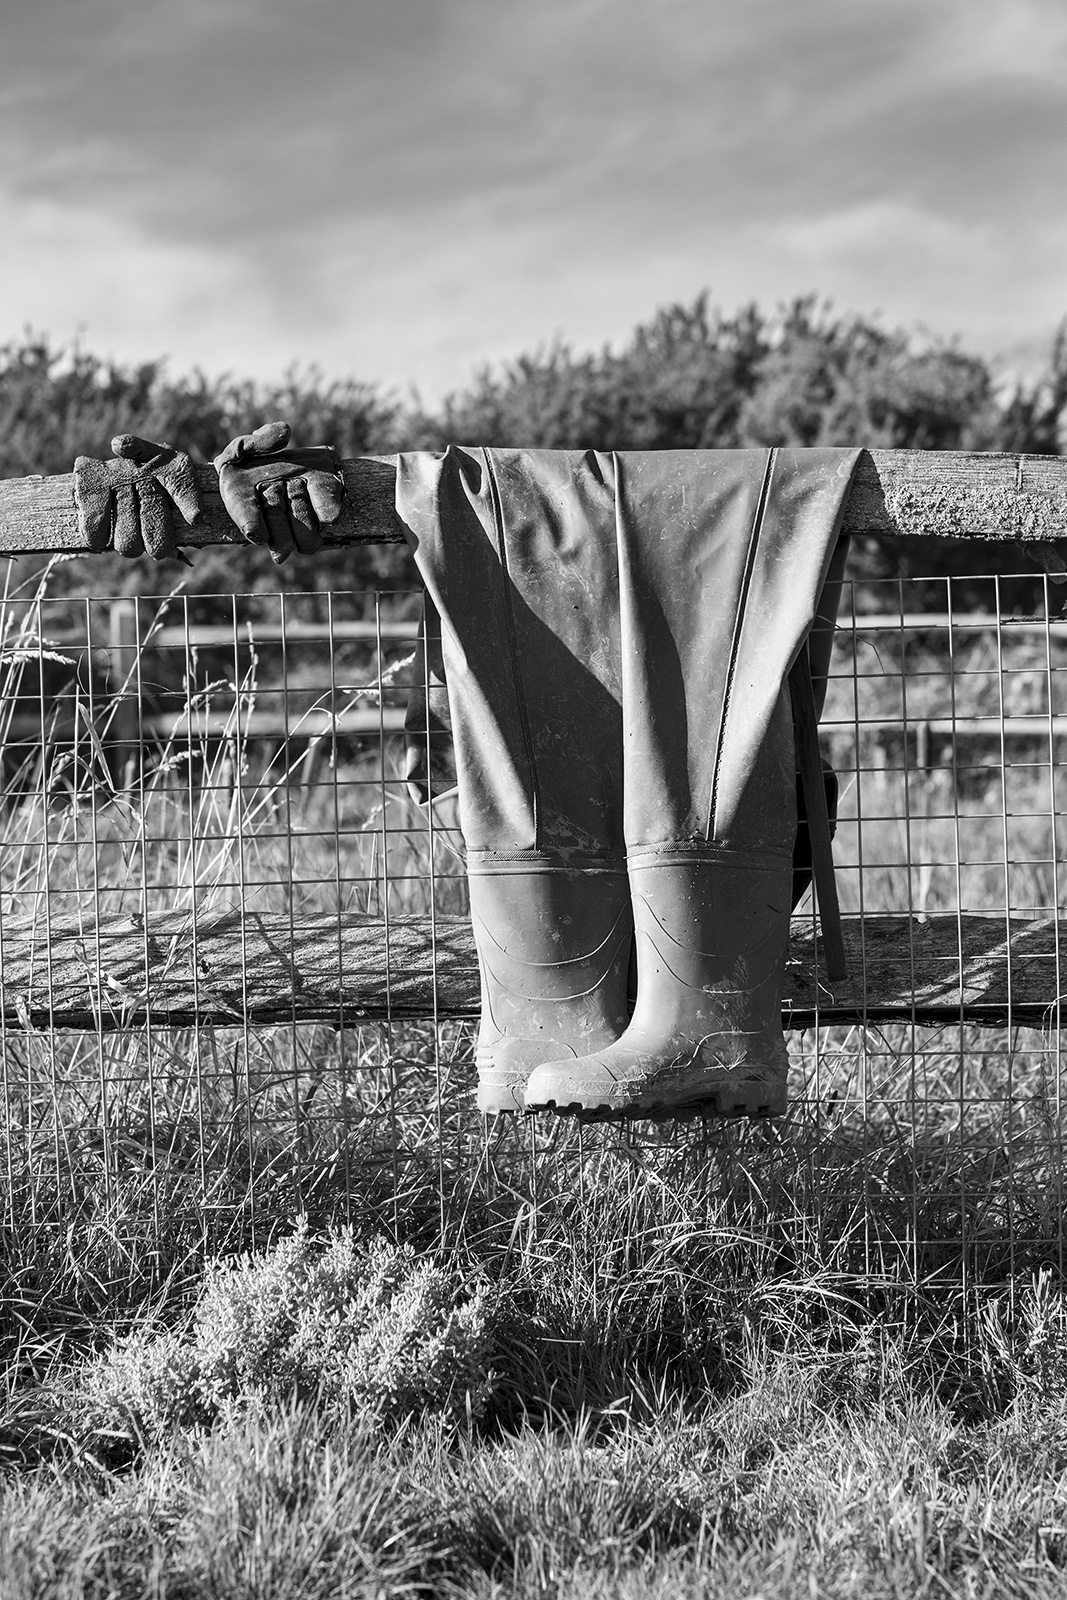 Rubber waders and work gloves draped over wooden fence by dew pond  amid chalk downland flora, Sheepcote Valley, Brighton UK black and white rural portrait photograph ©P. Maton 2018 eyeteeth.net